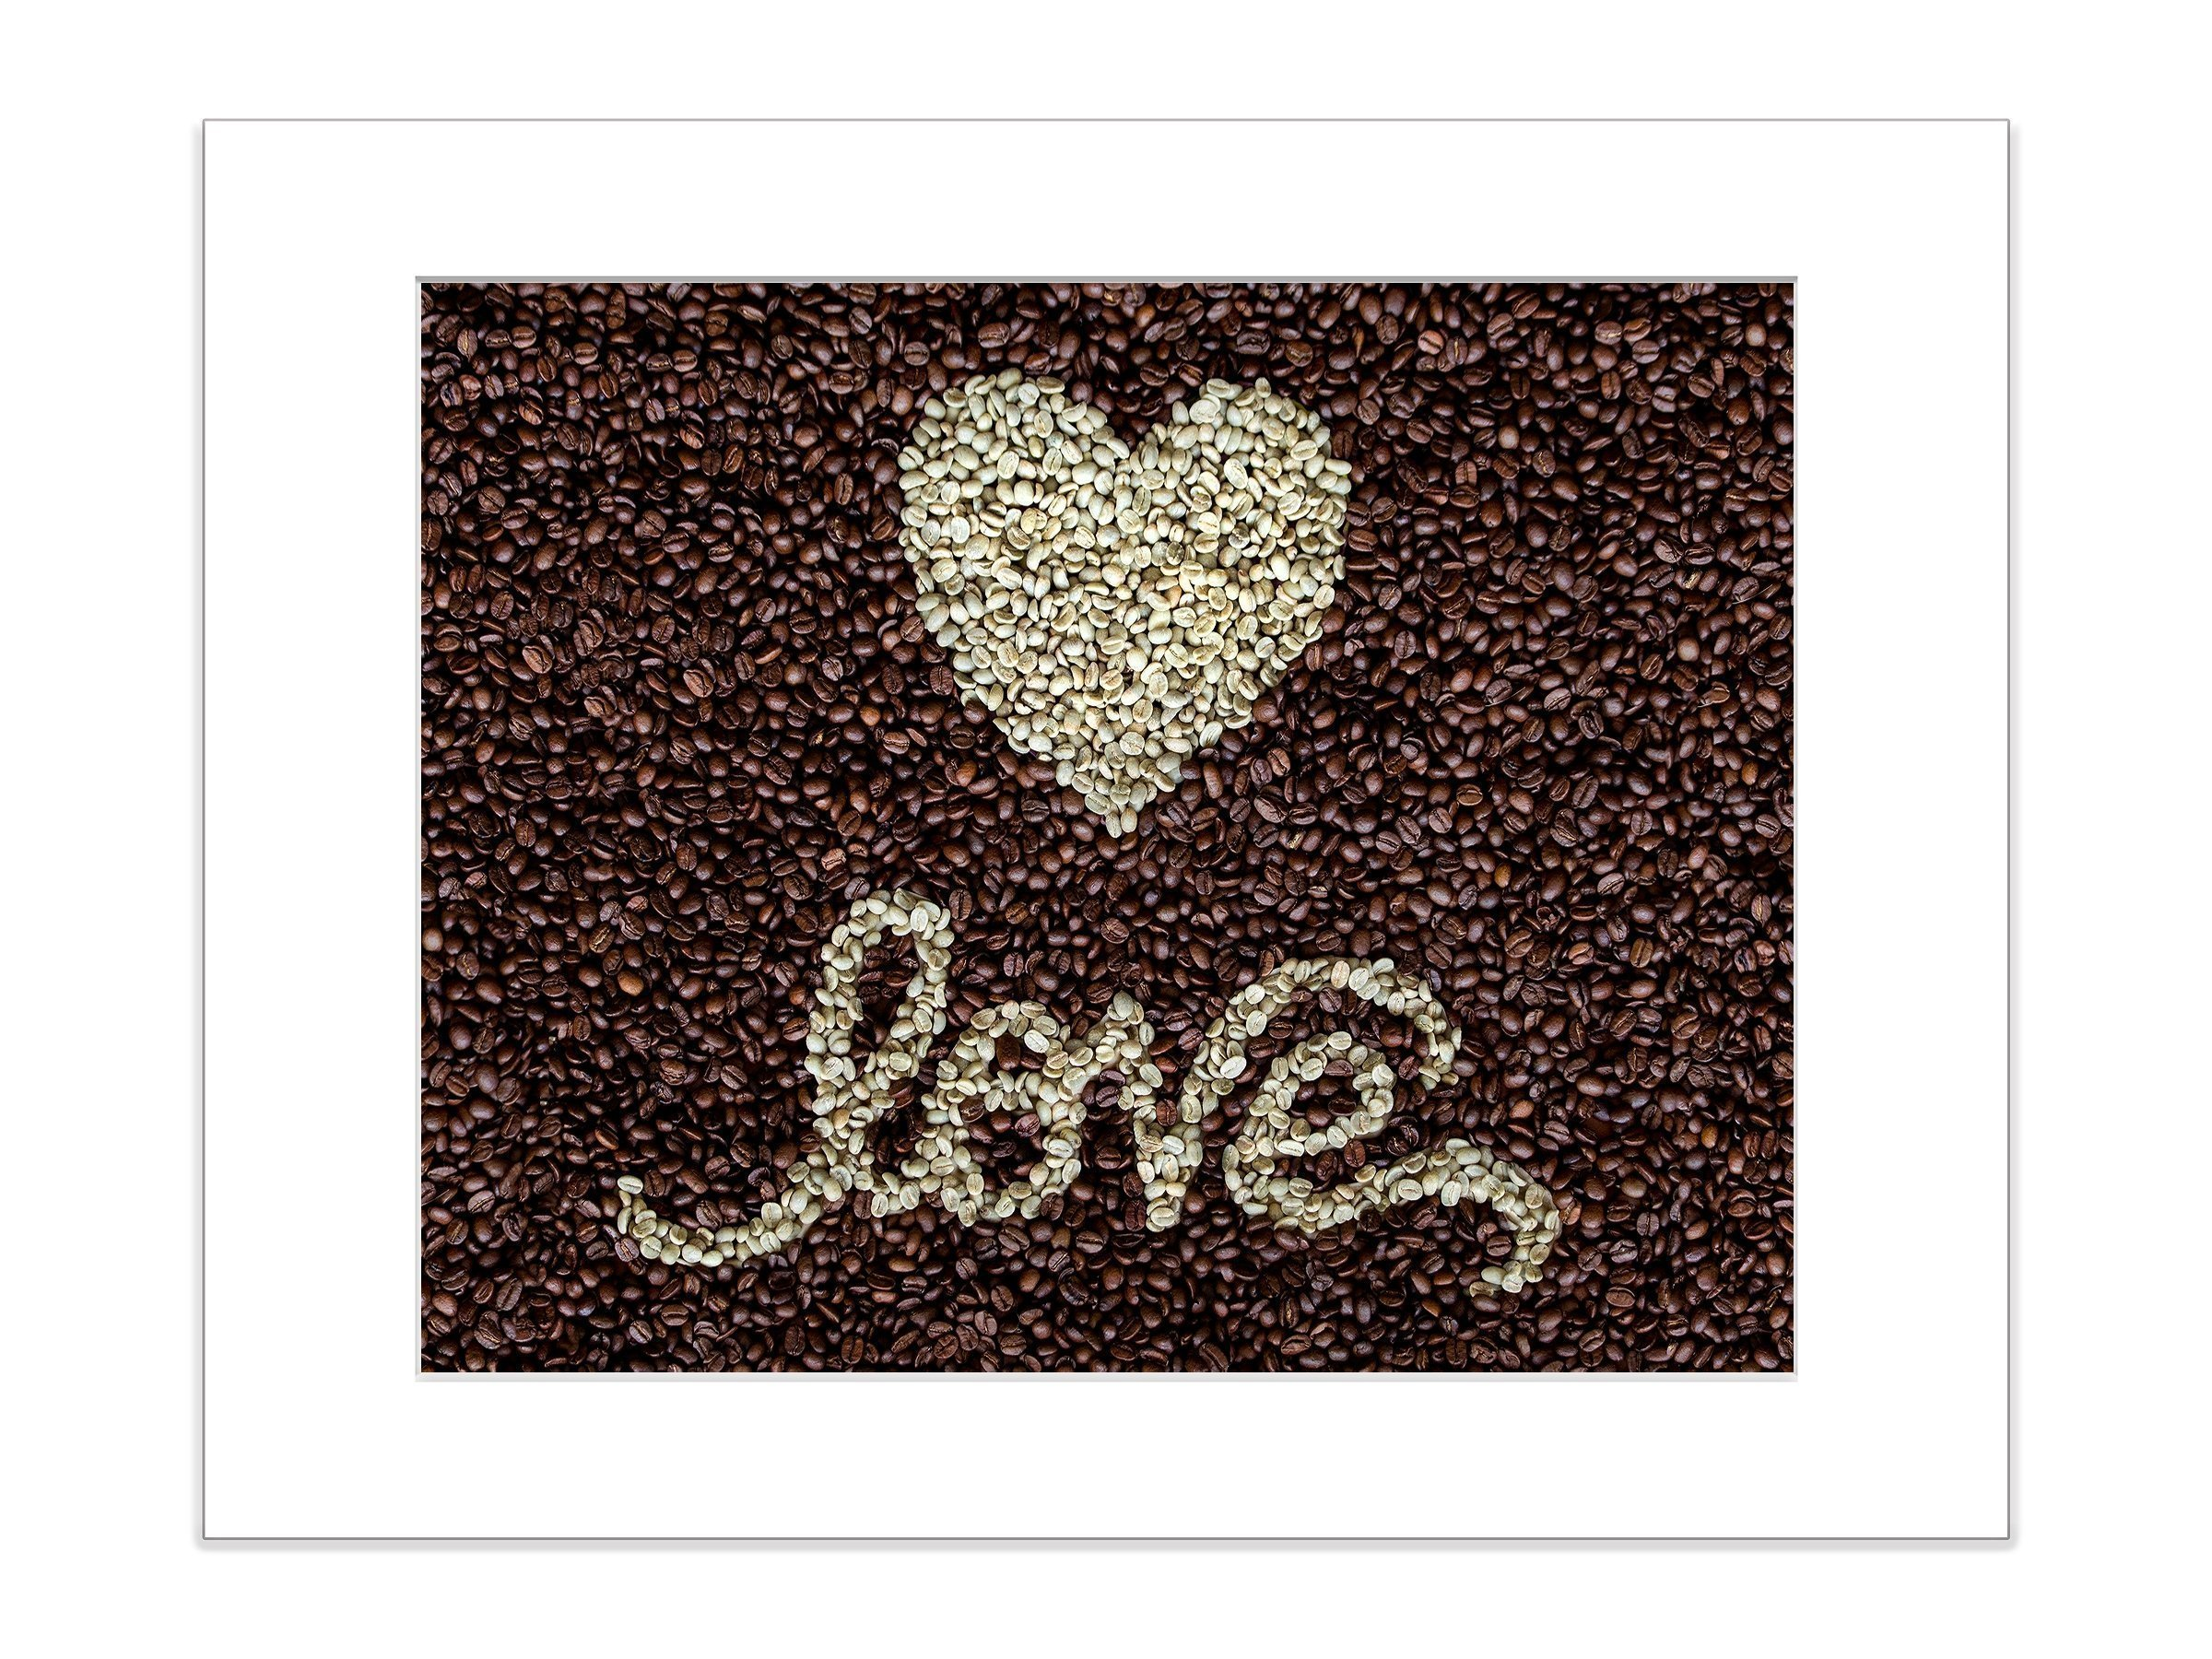 Kitchen Artwork Coffee Bean Wall Decor 8x10 Matted Print Love Heart Sign